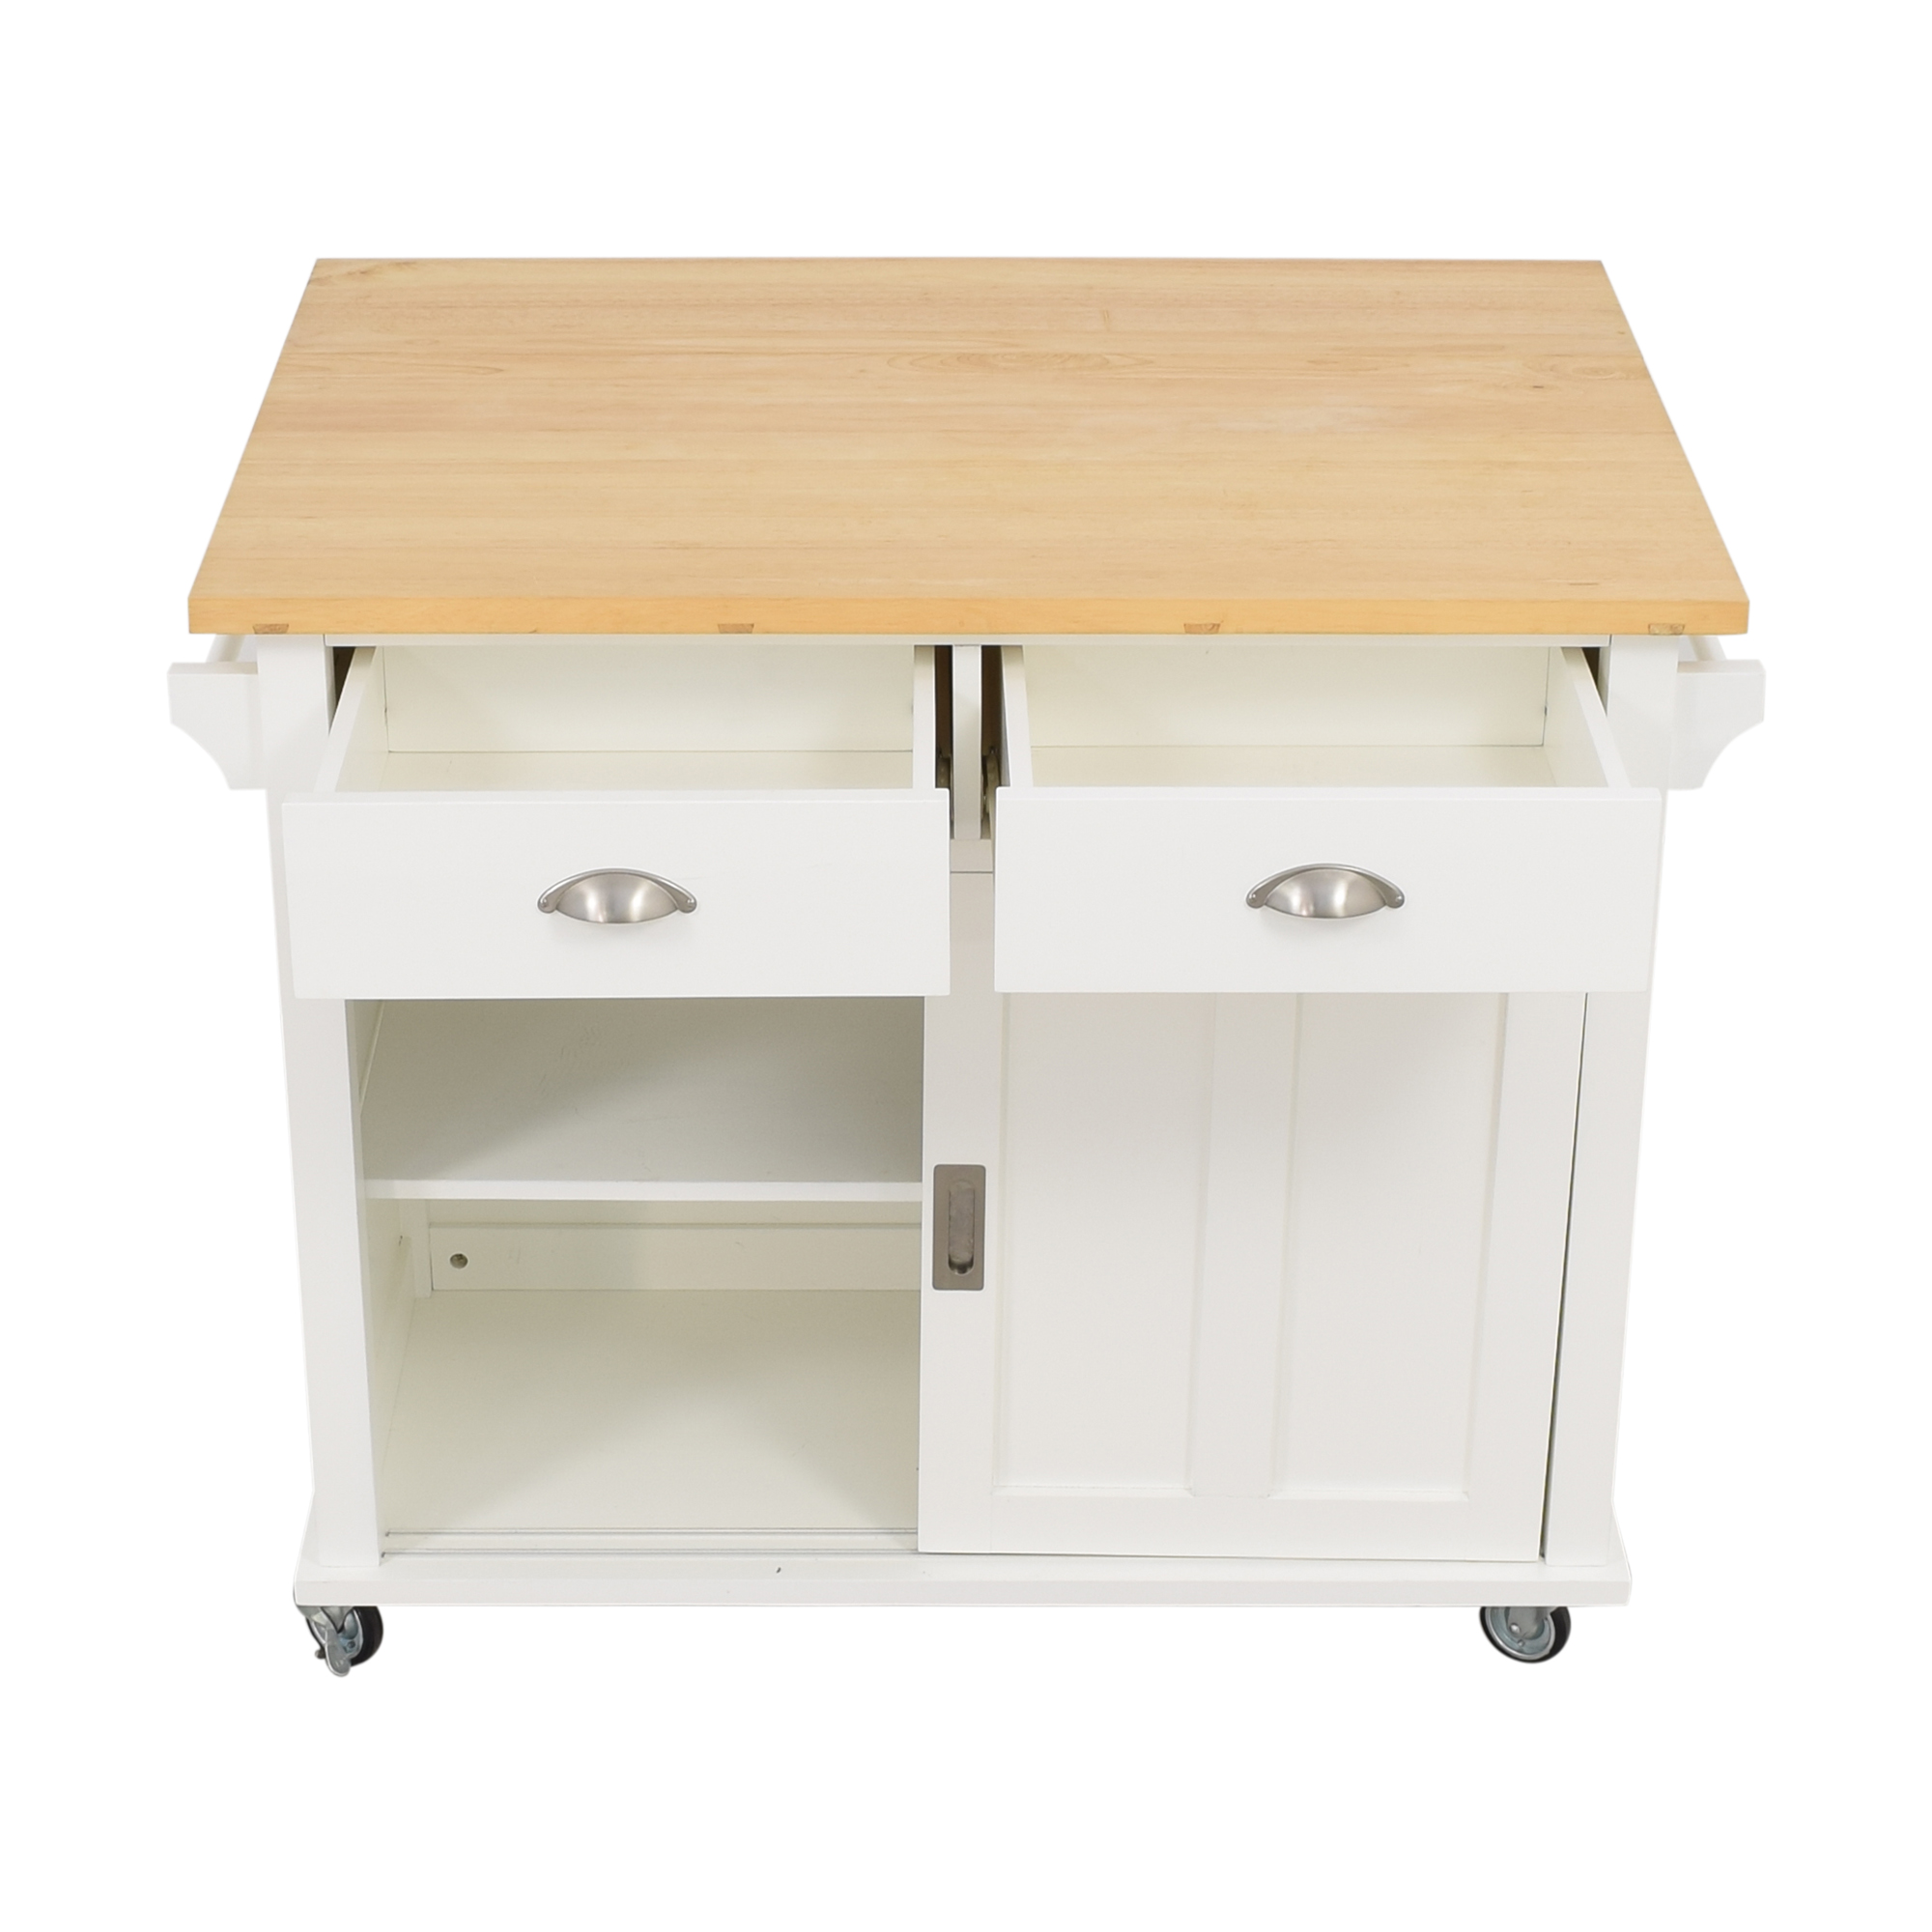 Crate & Barrel Crate & Barrel Belmont White Kitchen Island coupon